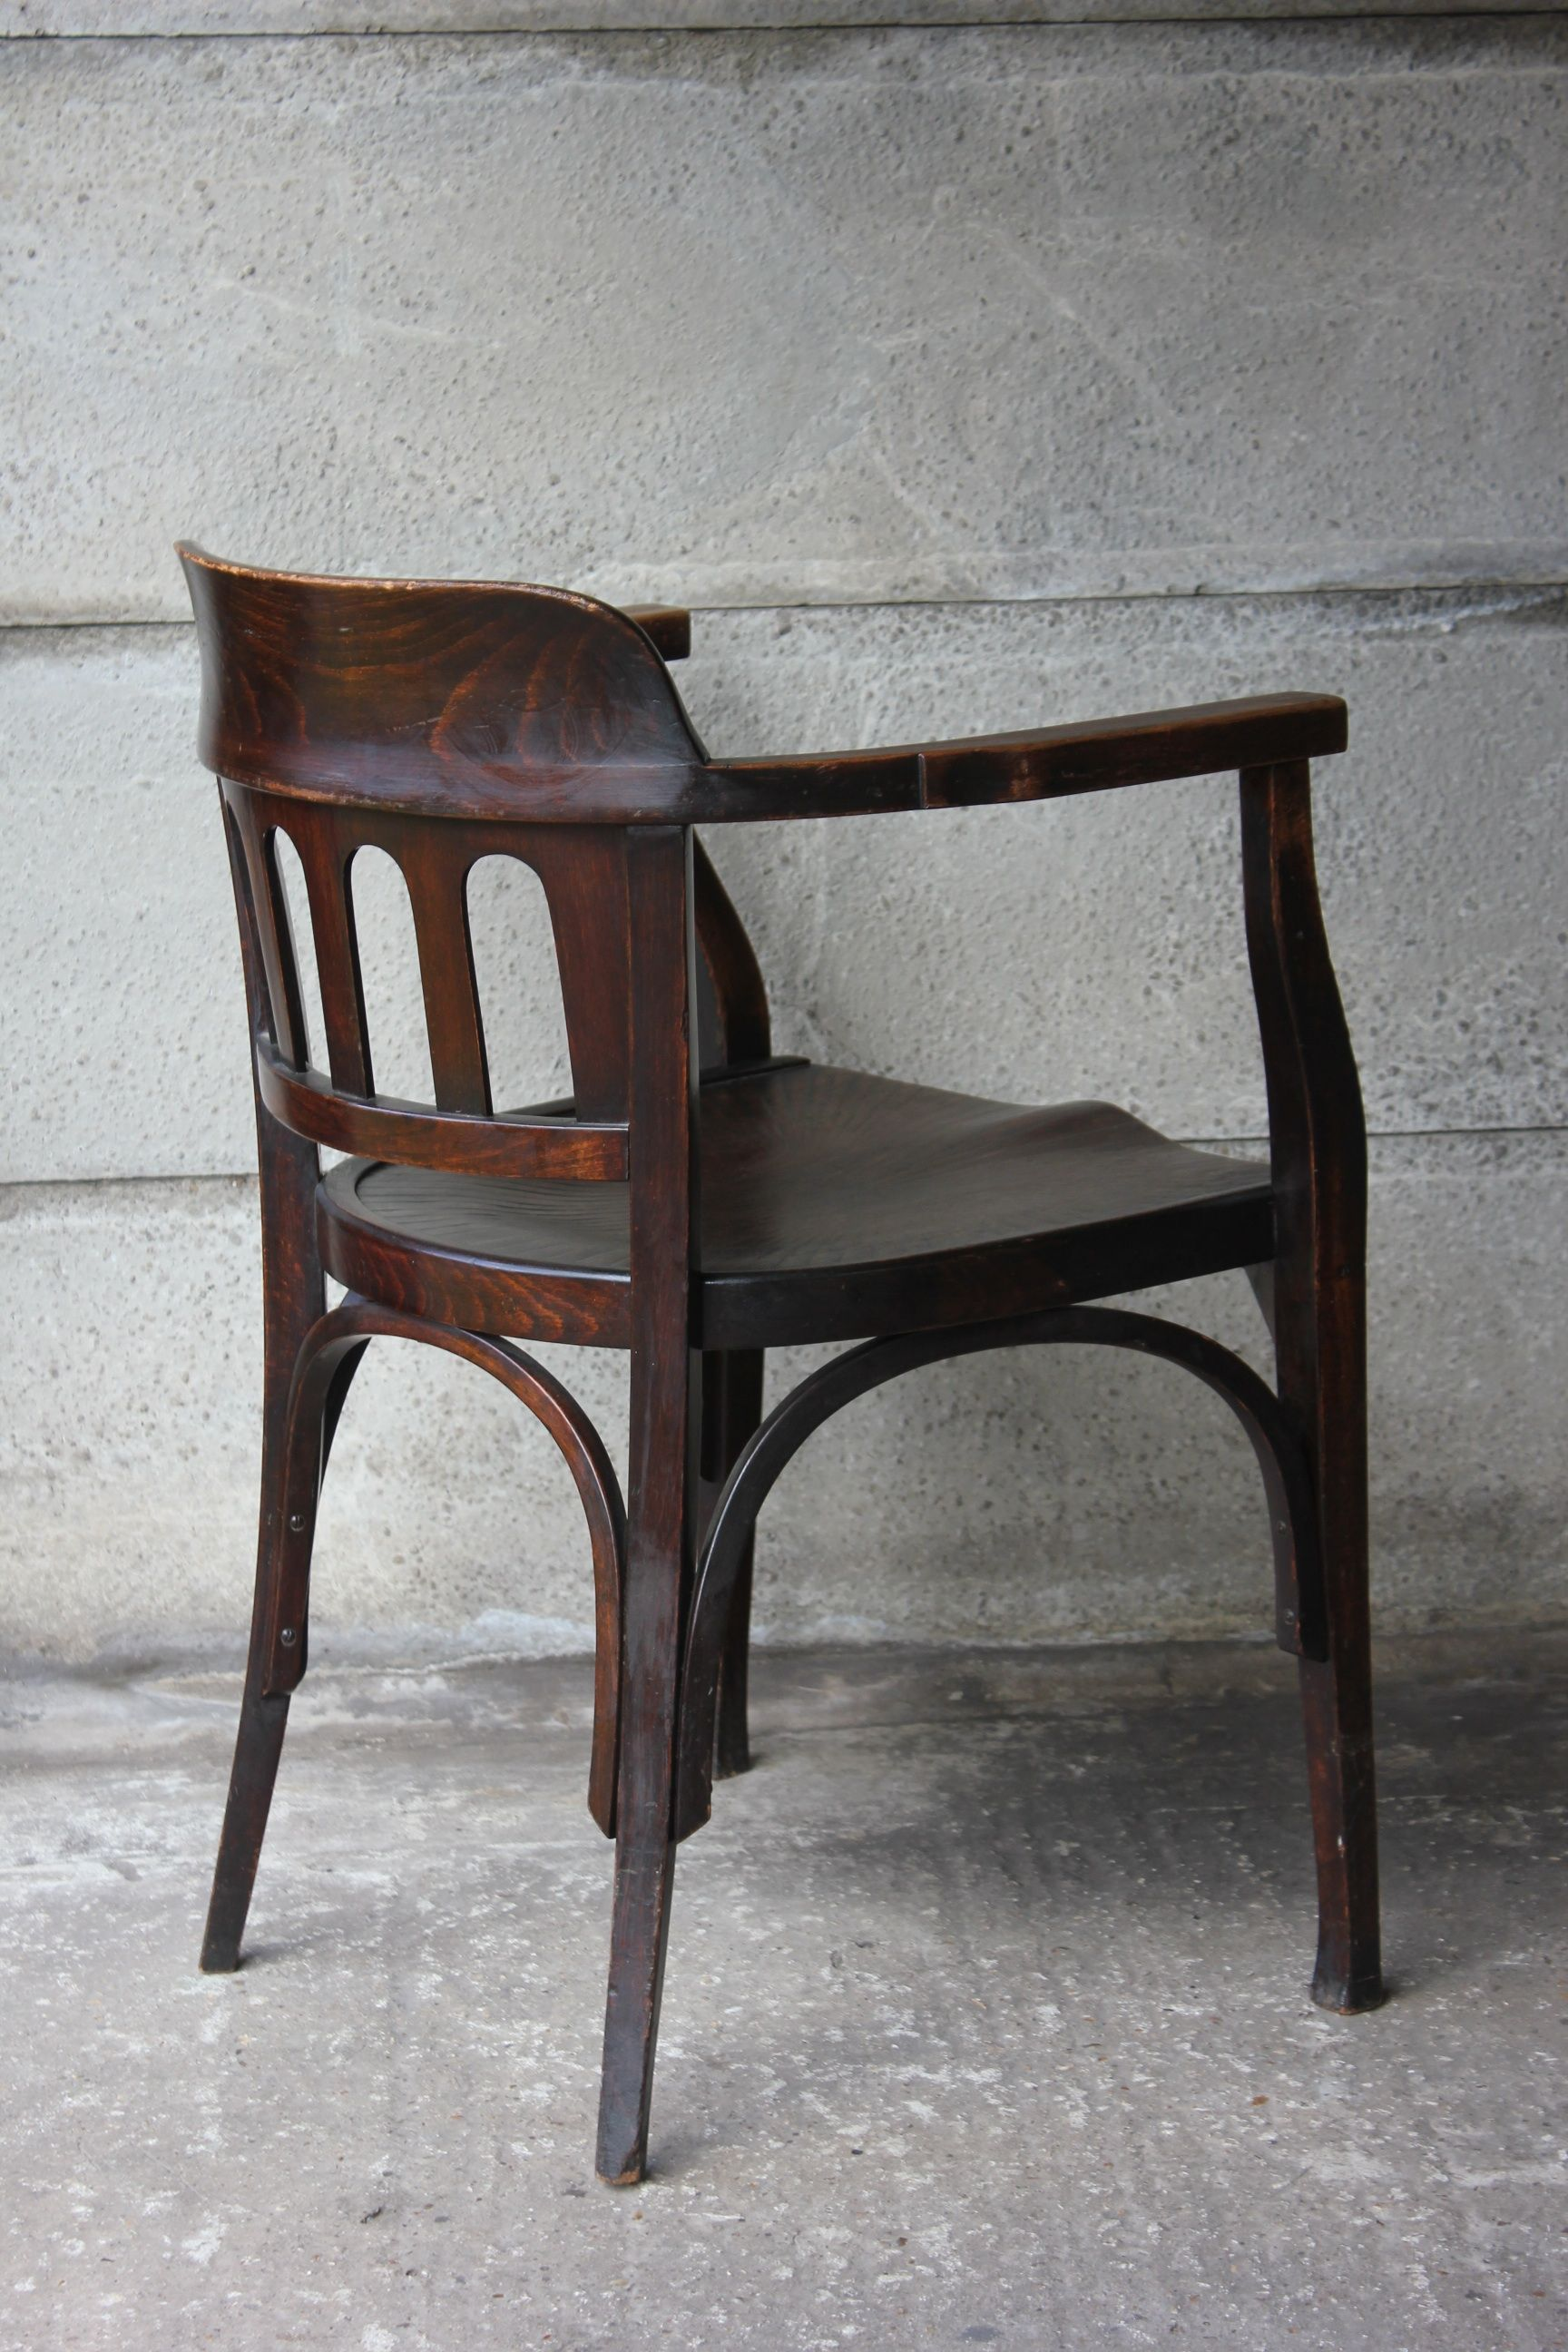 Rare original beech stained chair by eugene gaillard circa 1900 at - Armchair Otto Wagner J J Kohn 1902 05 A Slight Varient On The Chairs That Otto Wagner Designed For The Postal Office Savings Bank Building In Vienna